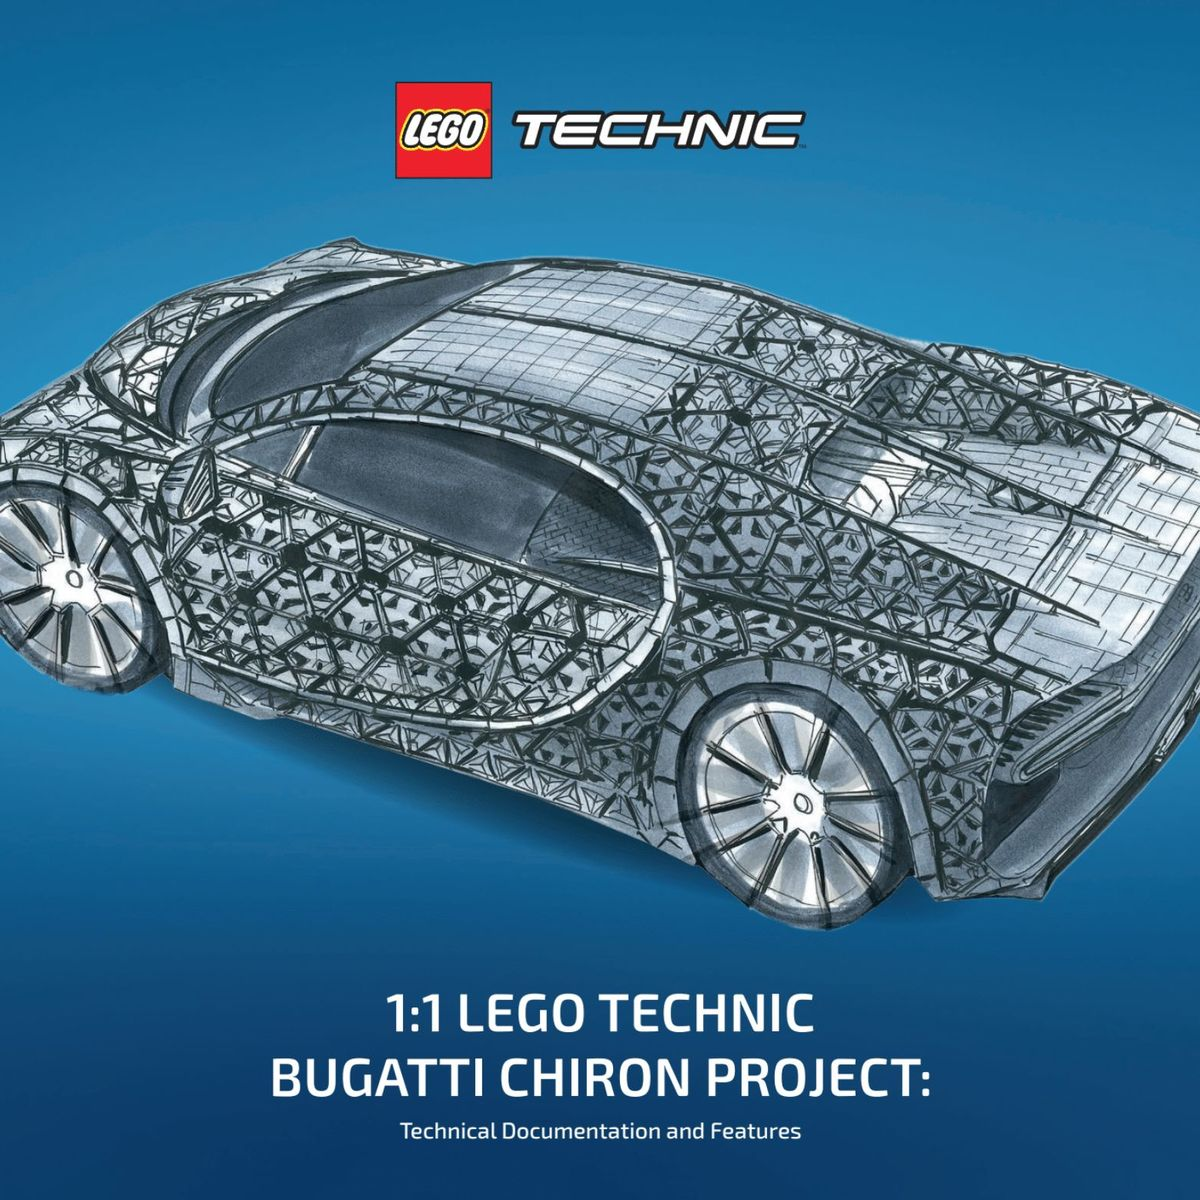 LEGO builds a full-scale, drivable Bugatti Chiron out of LEGO Technics